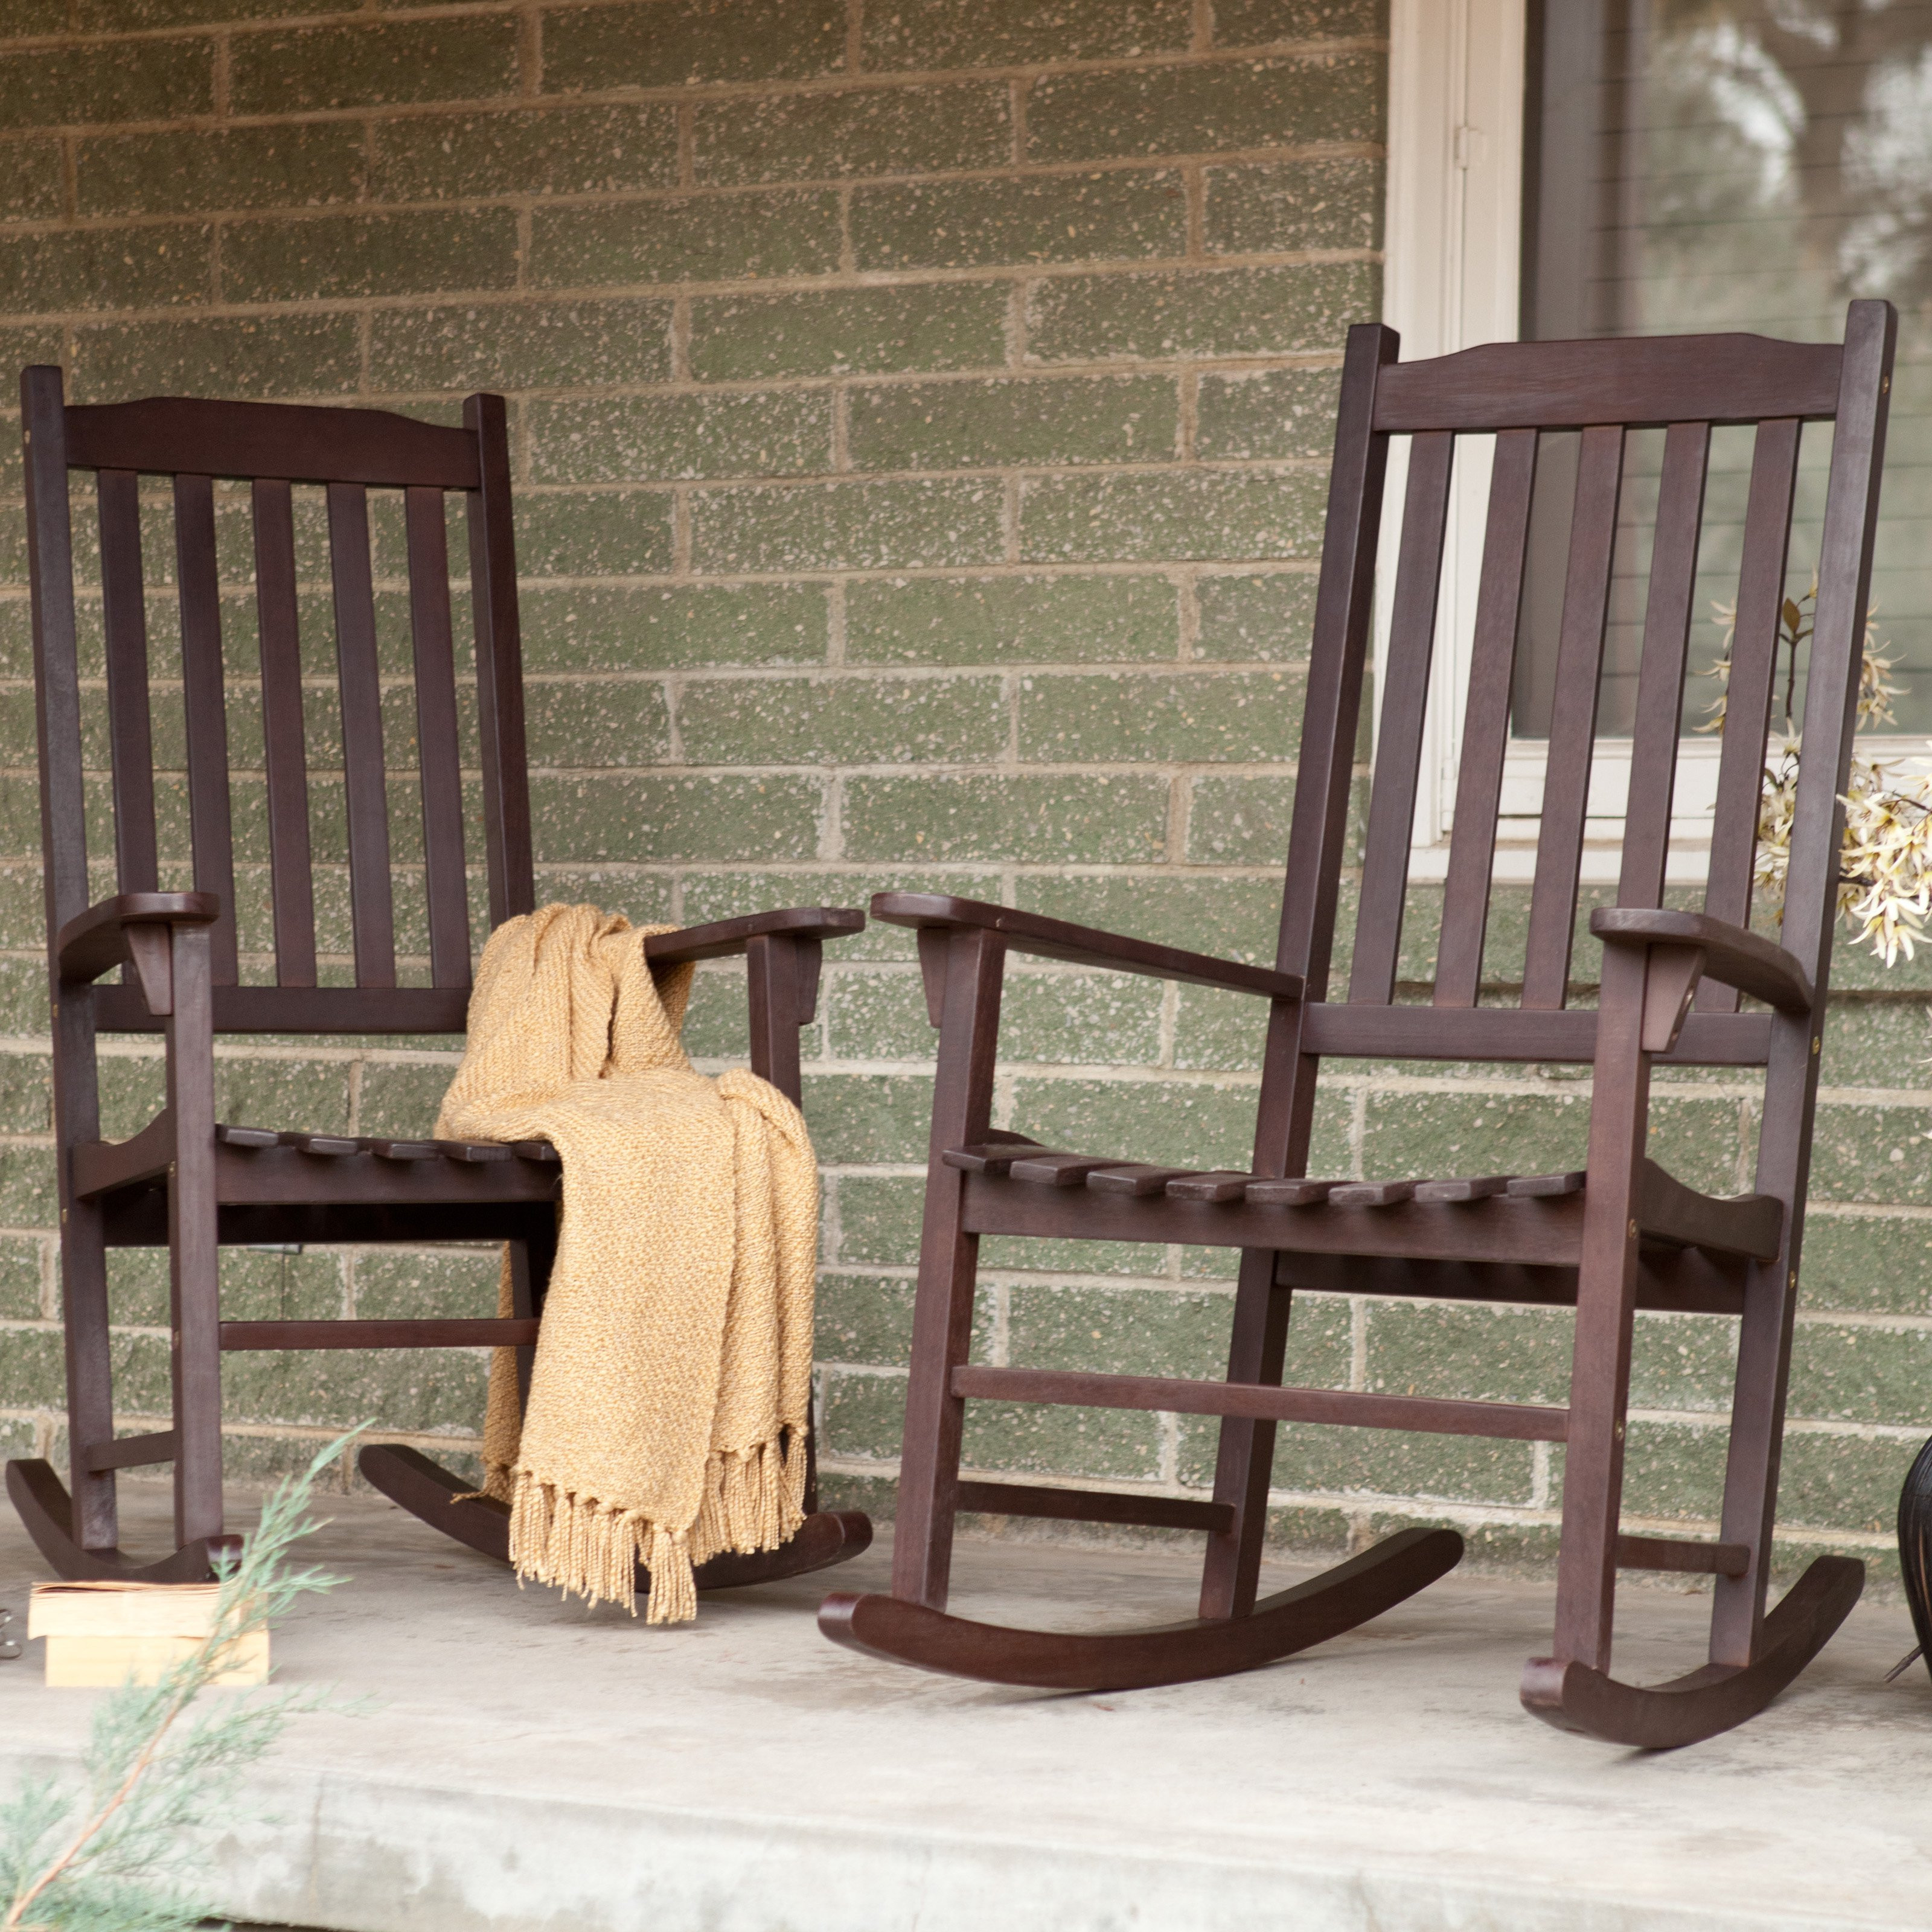 Best ideas about Outdoor Rocking Chairs . Save or Pin Coral Coast Indoor Outdoor Mission Slat Rocking Chairs Now.